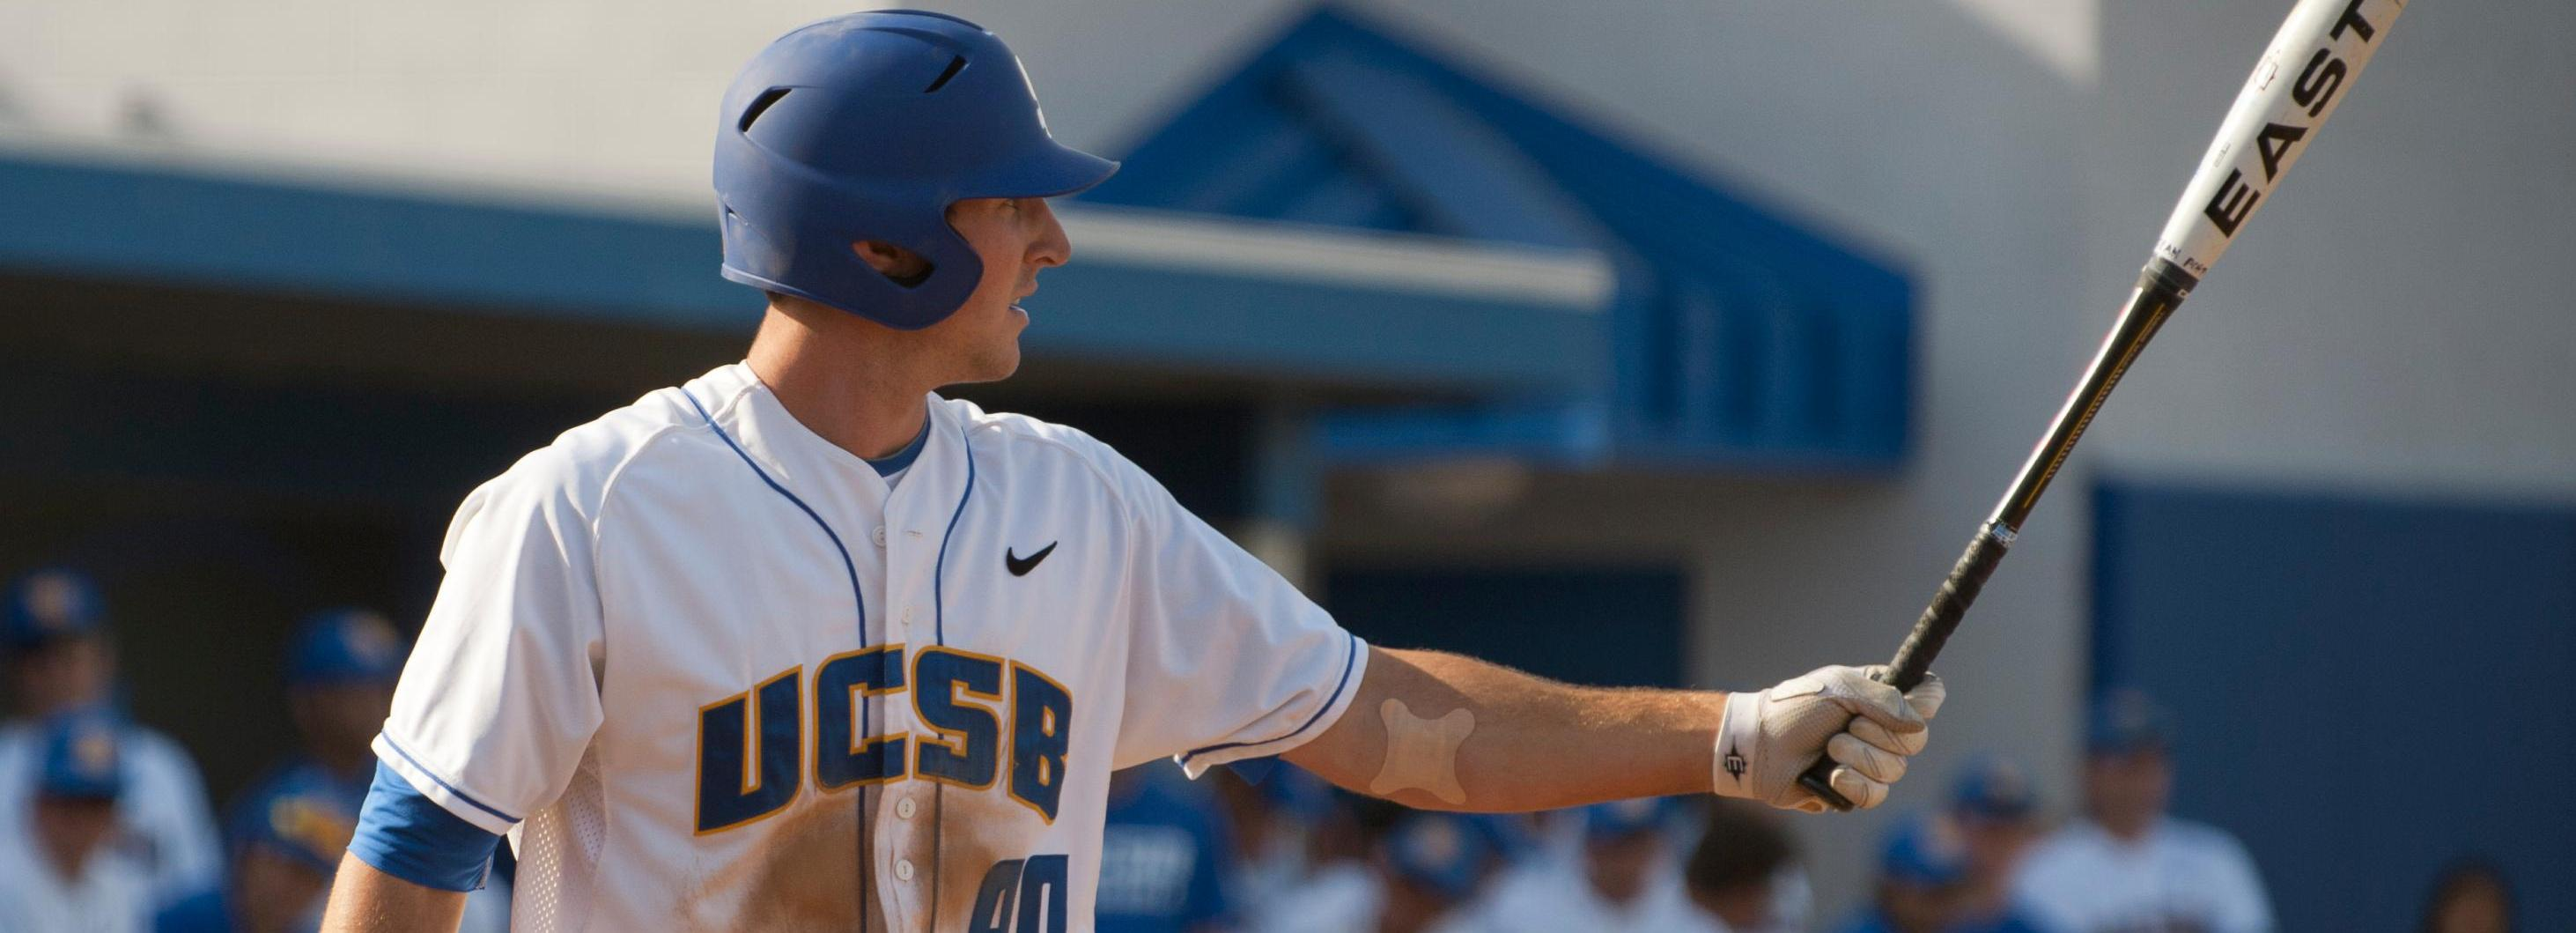 UCSB Baseball Announces a Night for Baseball & Reunion Weekend